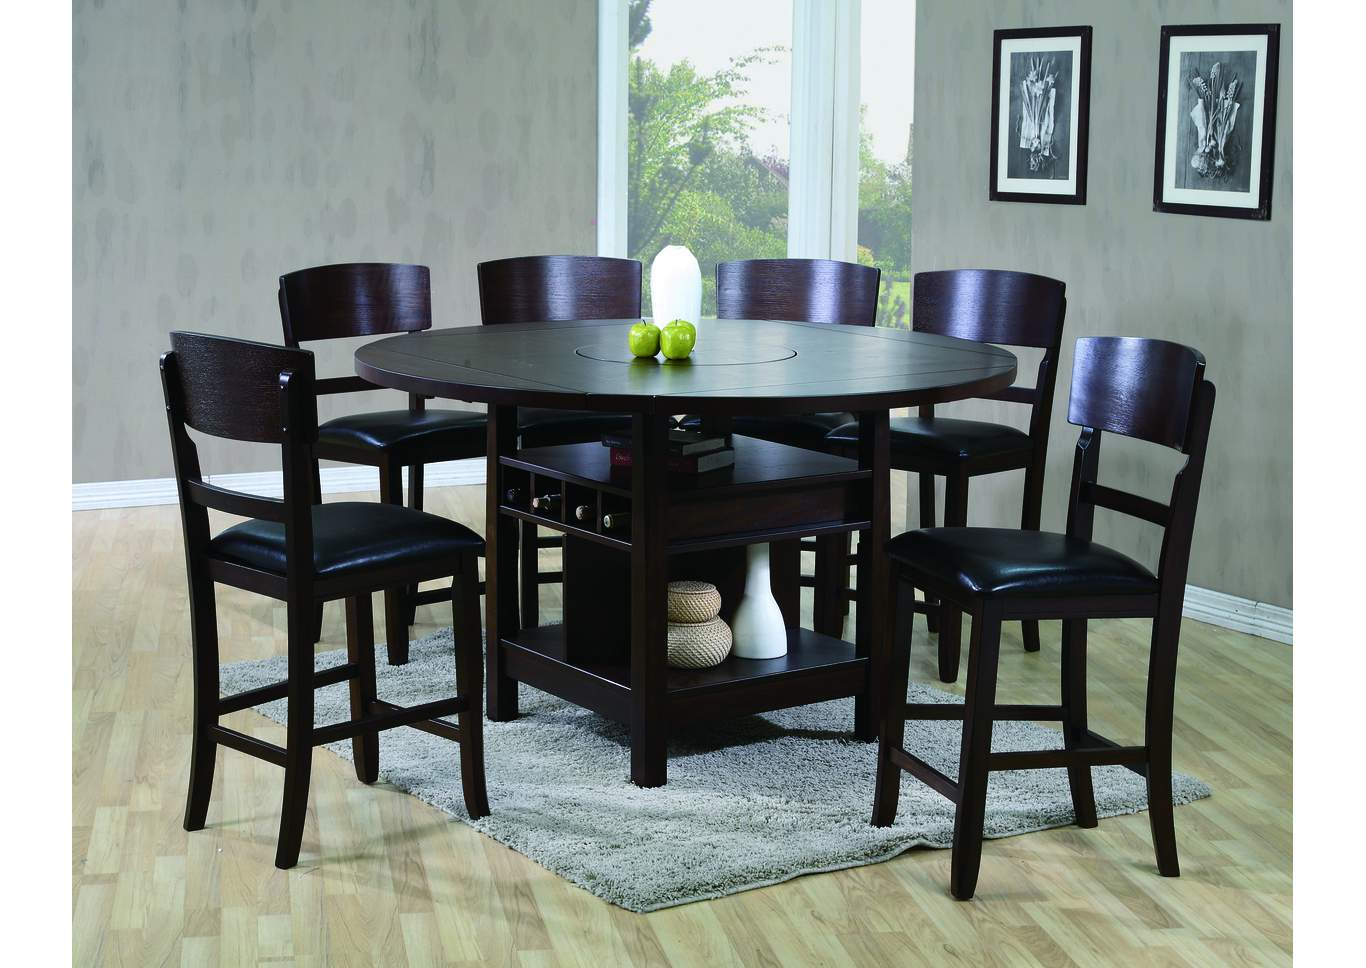 National Furniture Outlet   Westwego, LA Conner Espresso Counter Height  Table W/ 4 Side Chairs